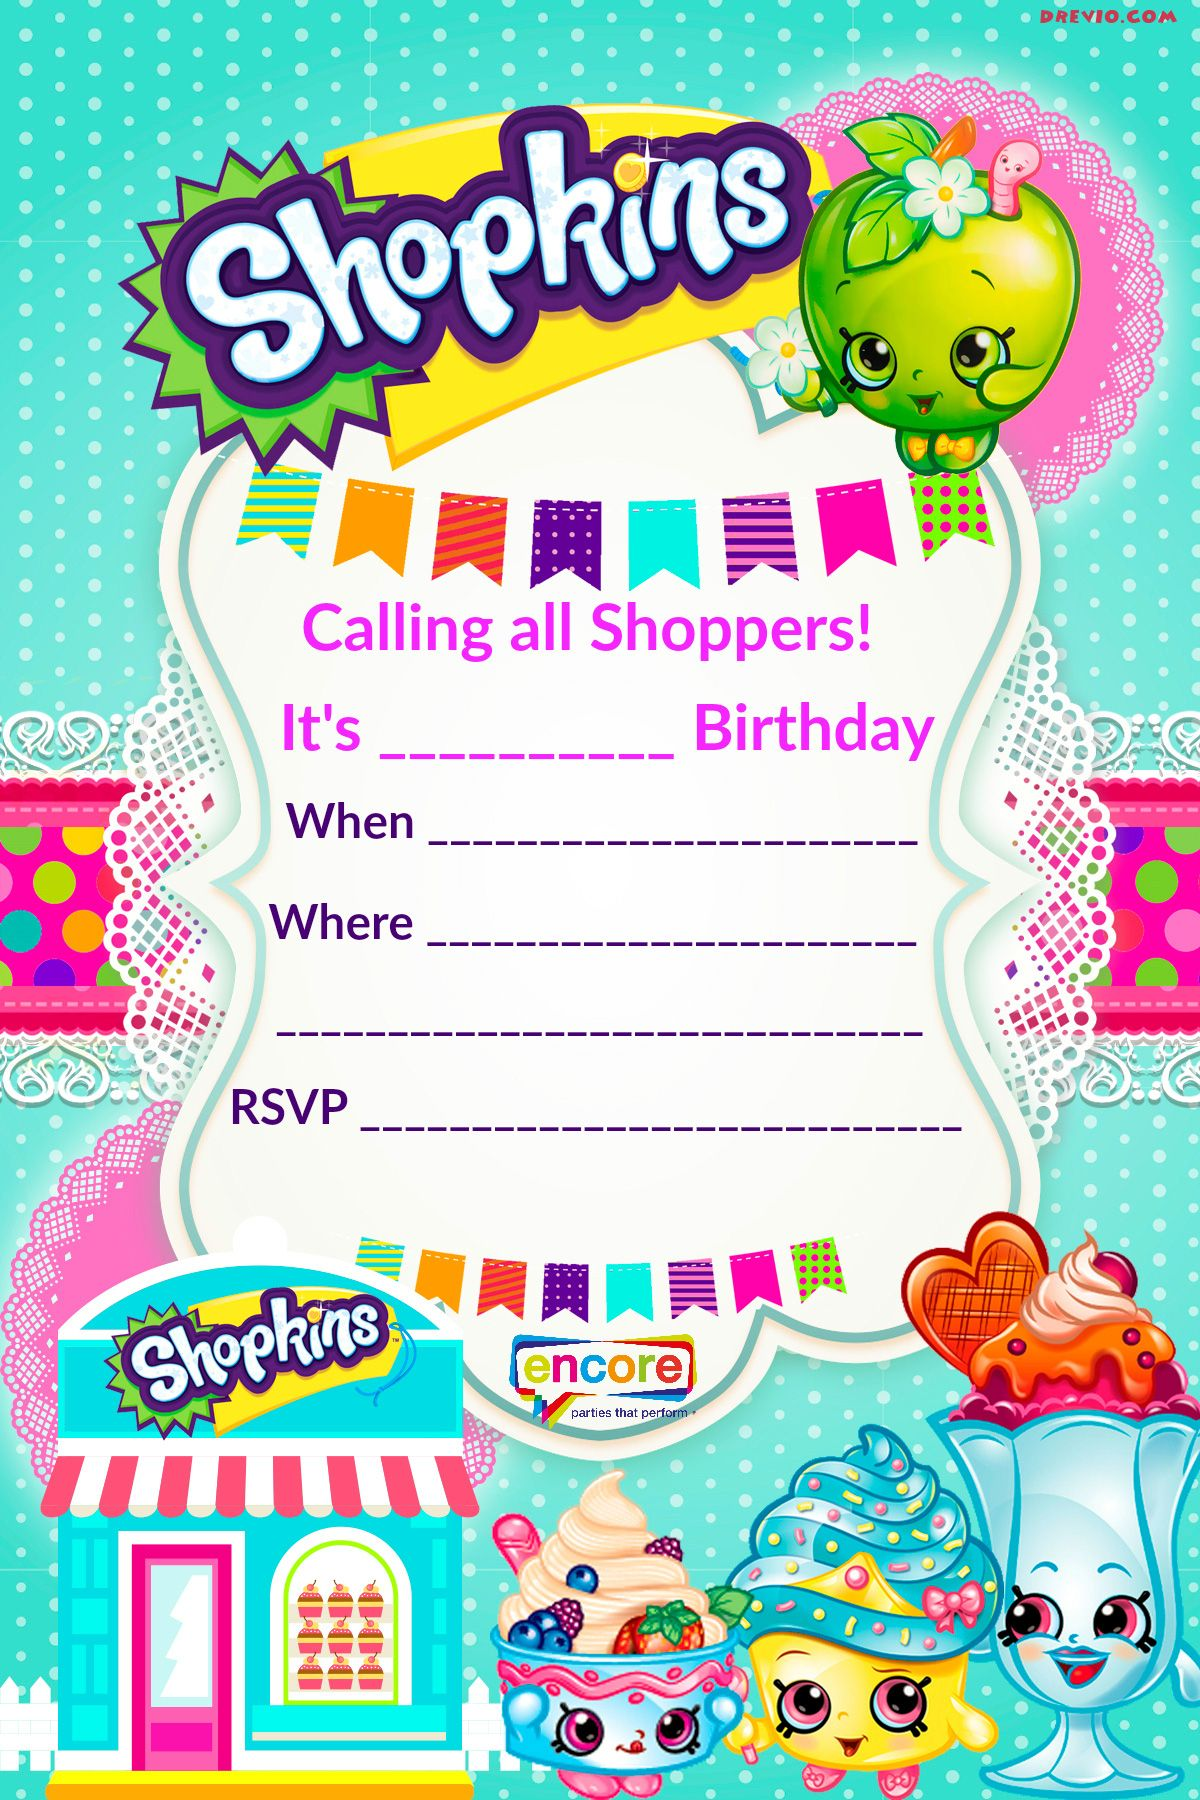 photo relating to Free Printable Shopkins Invitations referred to as Up to date Totally free Printable Shopkins Birthday Invitation